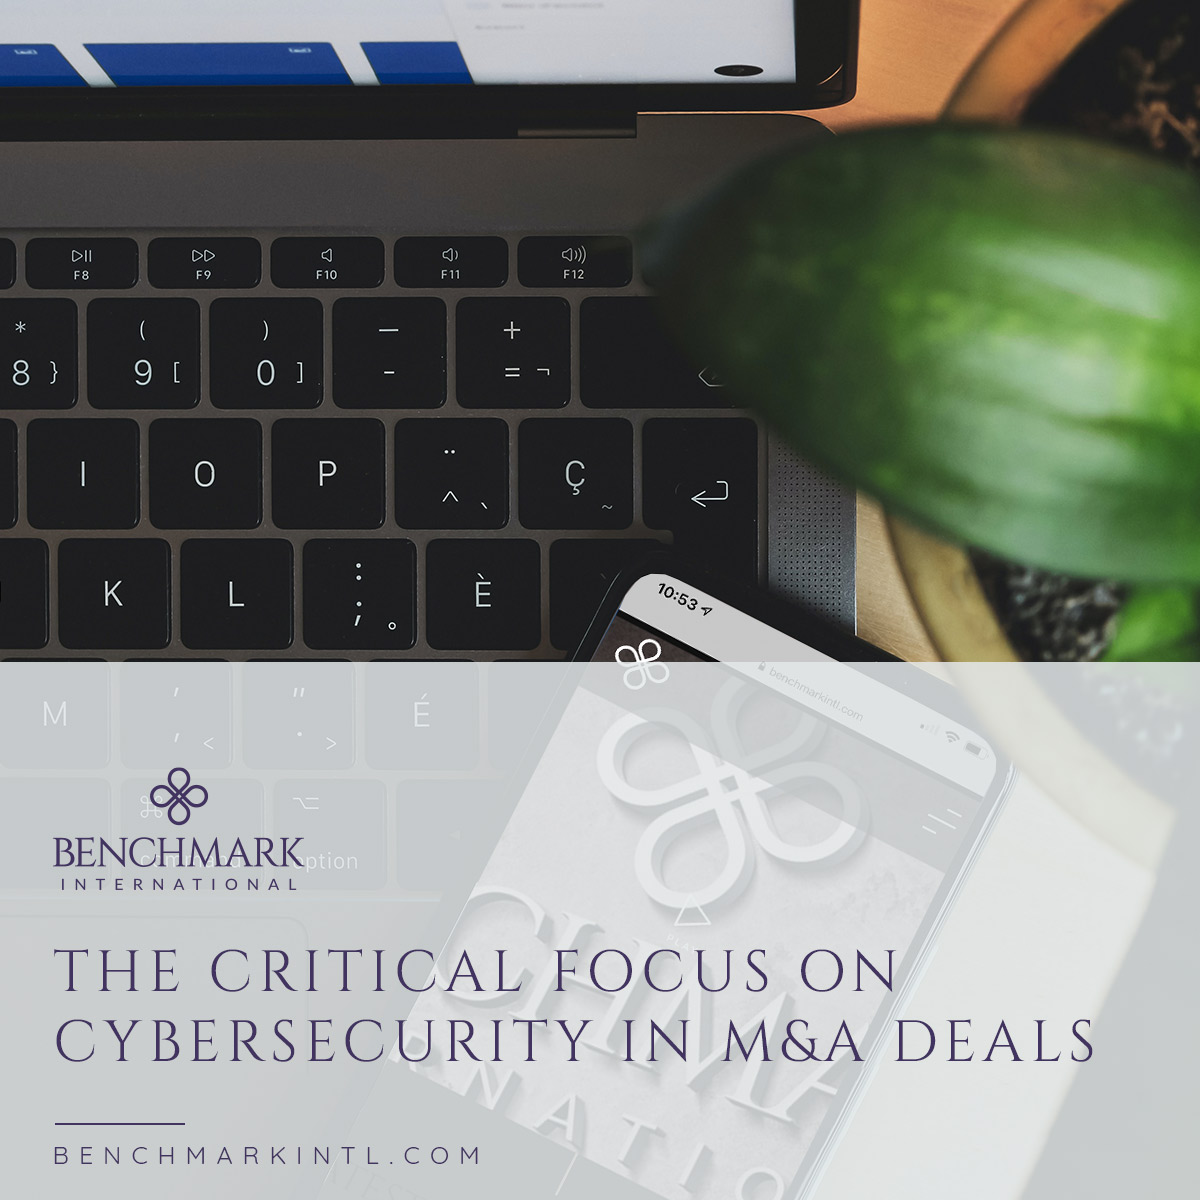 The_Critical_Focus_On_Cybersecurity_in_M&A_Deals_Social(2)